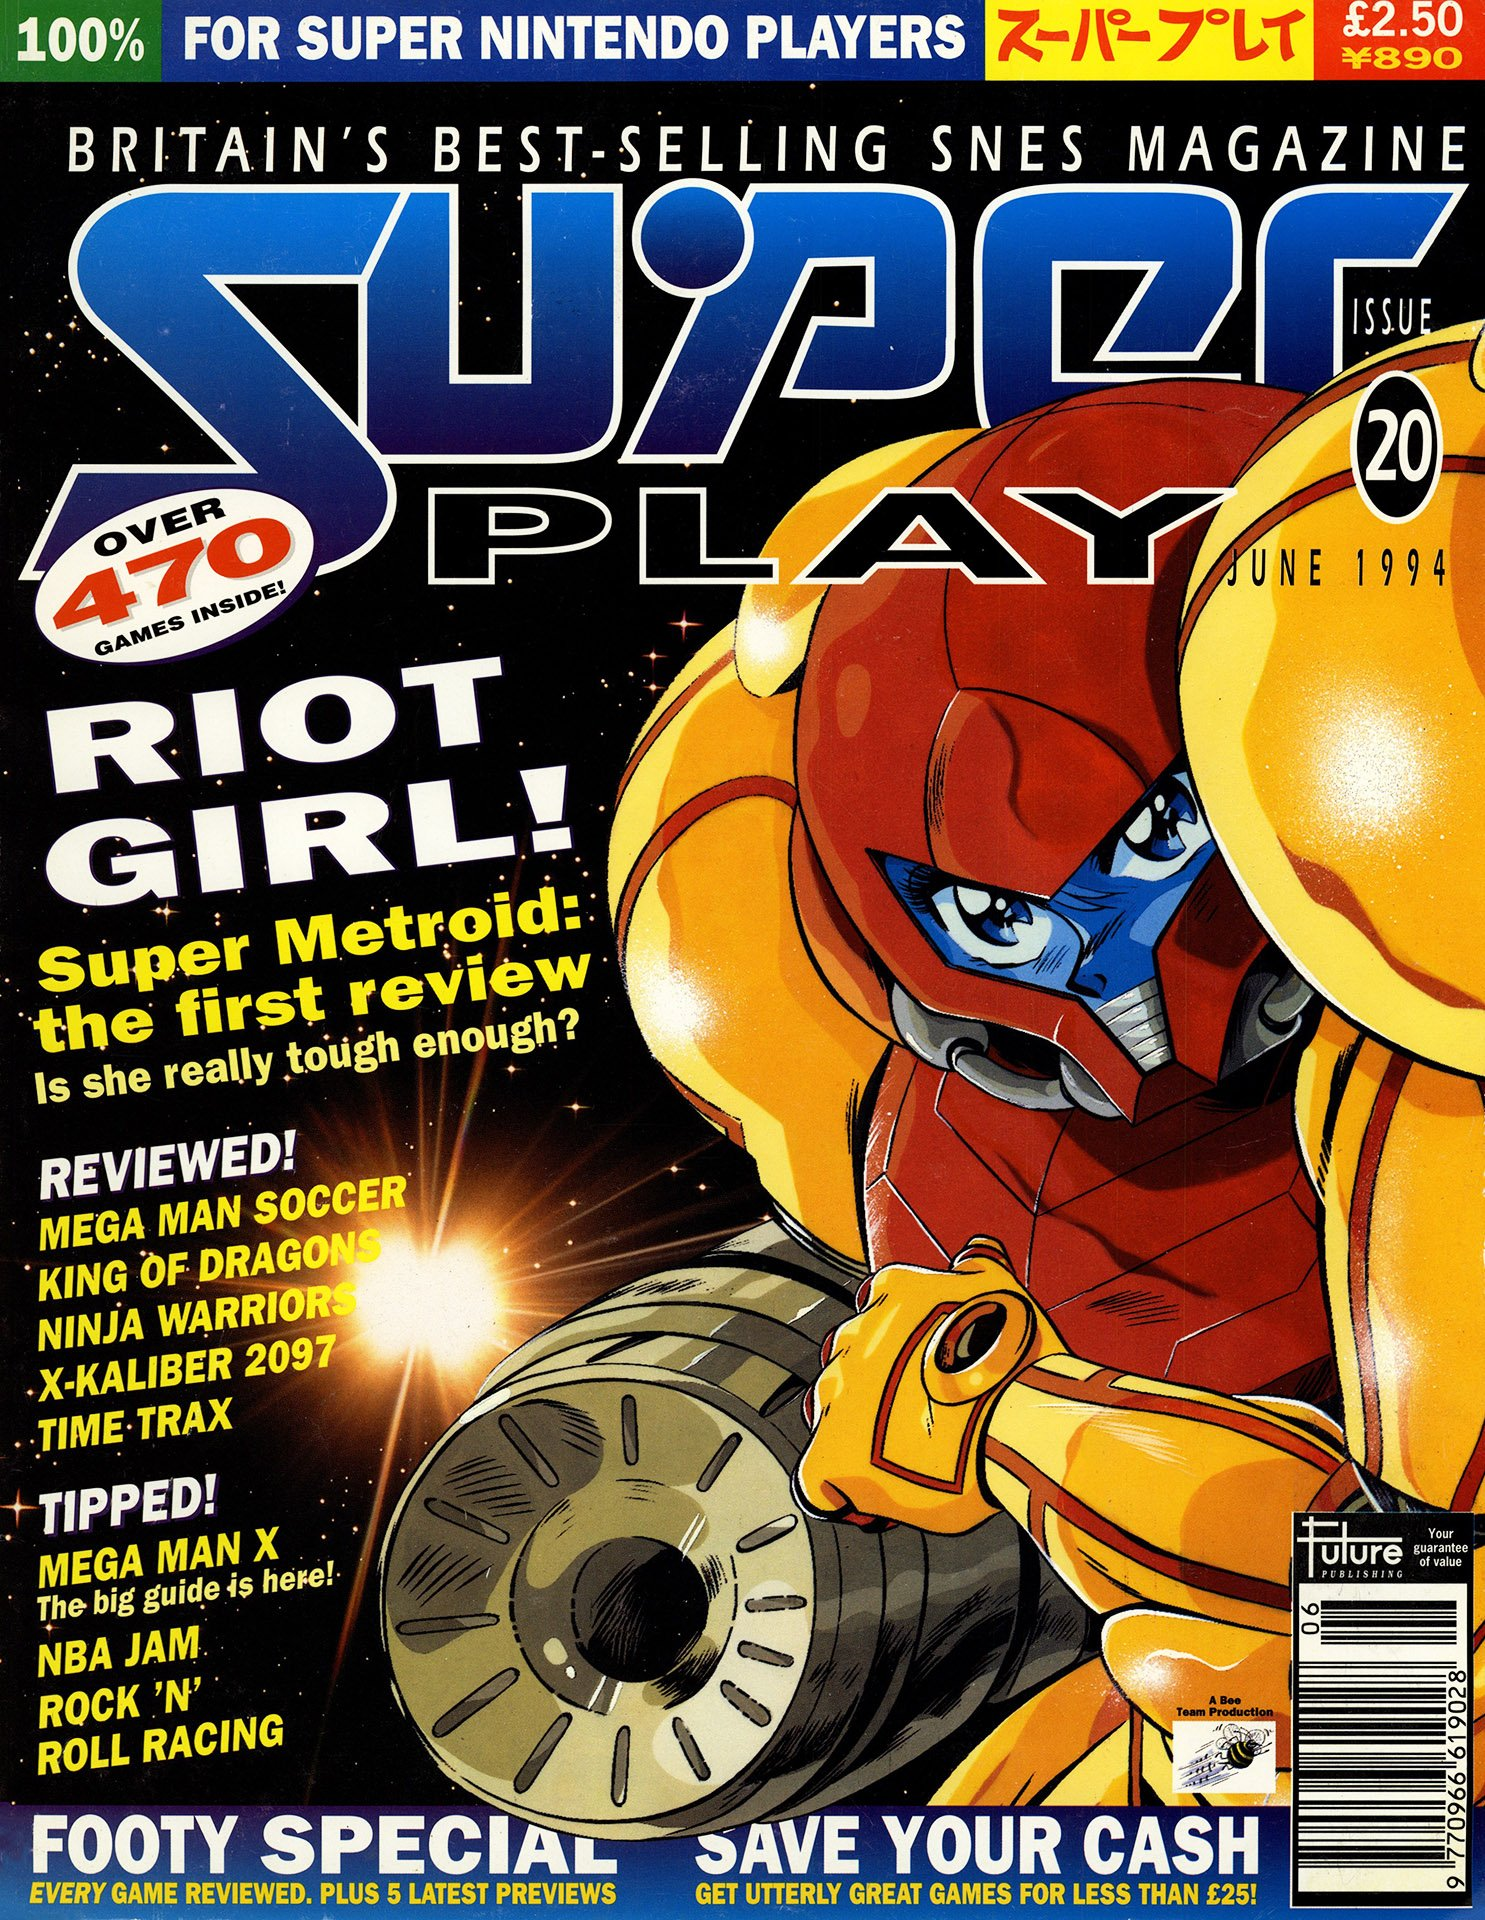 Super Play Issue 20 (June 1994)